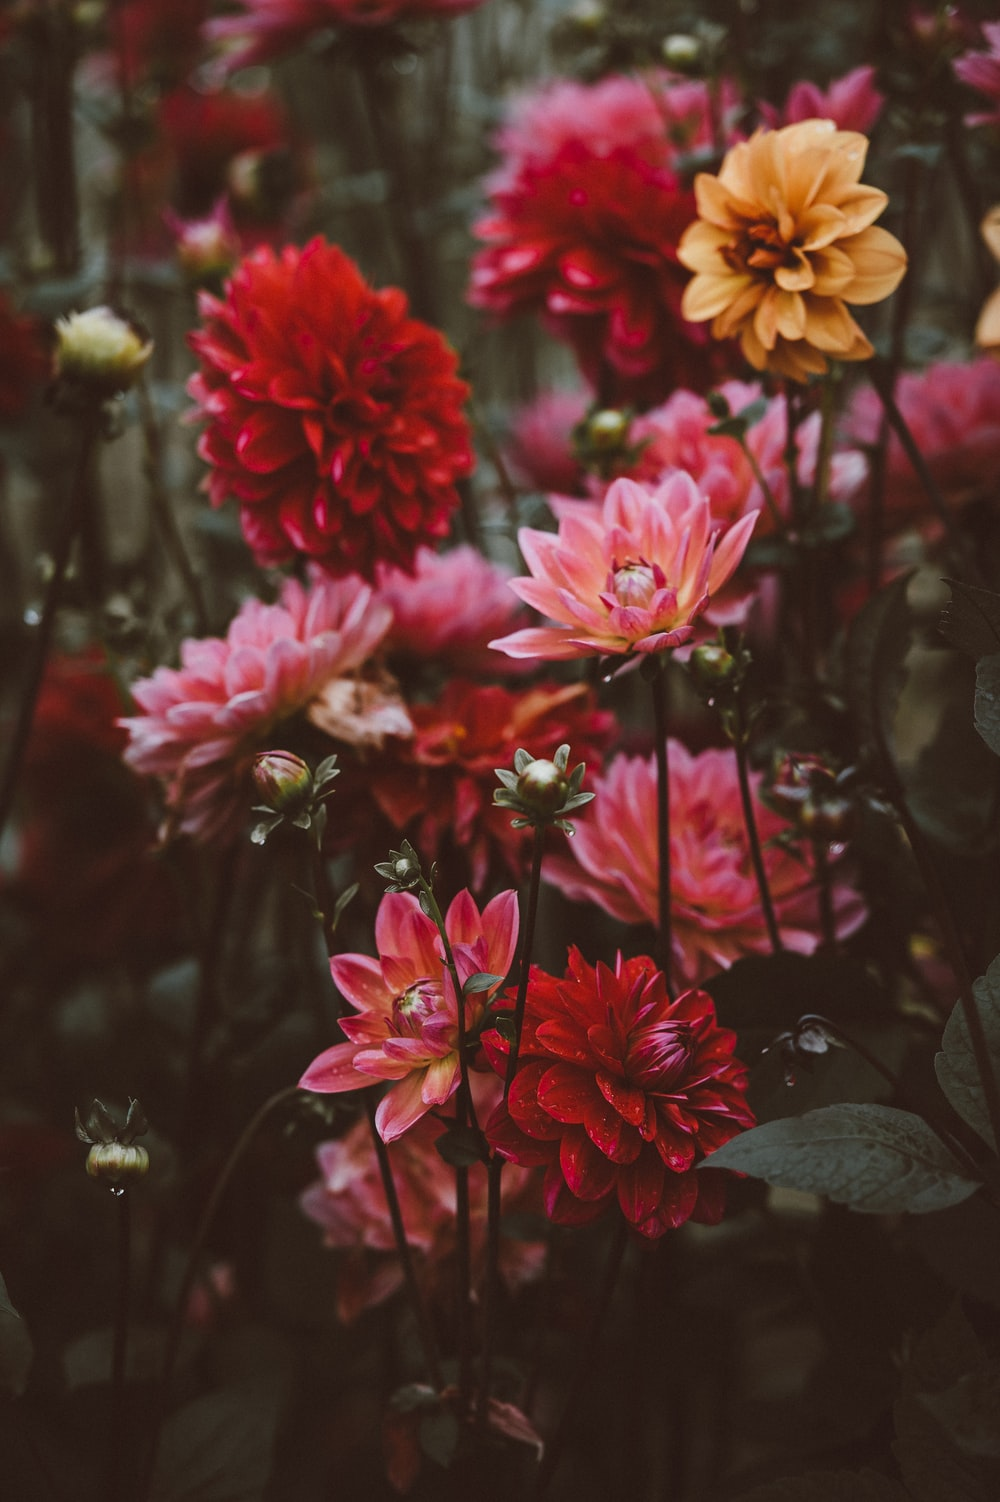 Dahlia Pictures Download Free Images On Unsplash